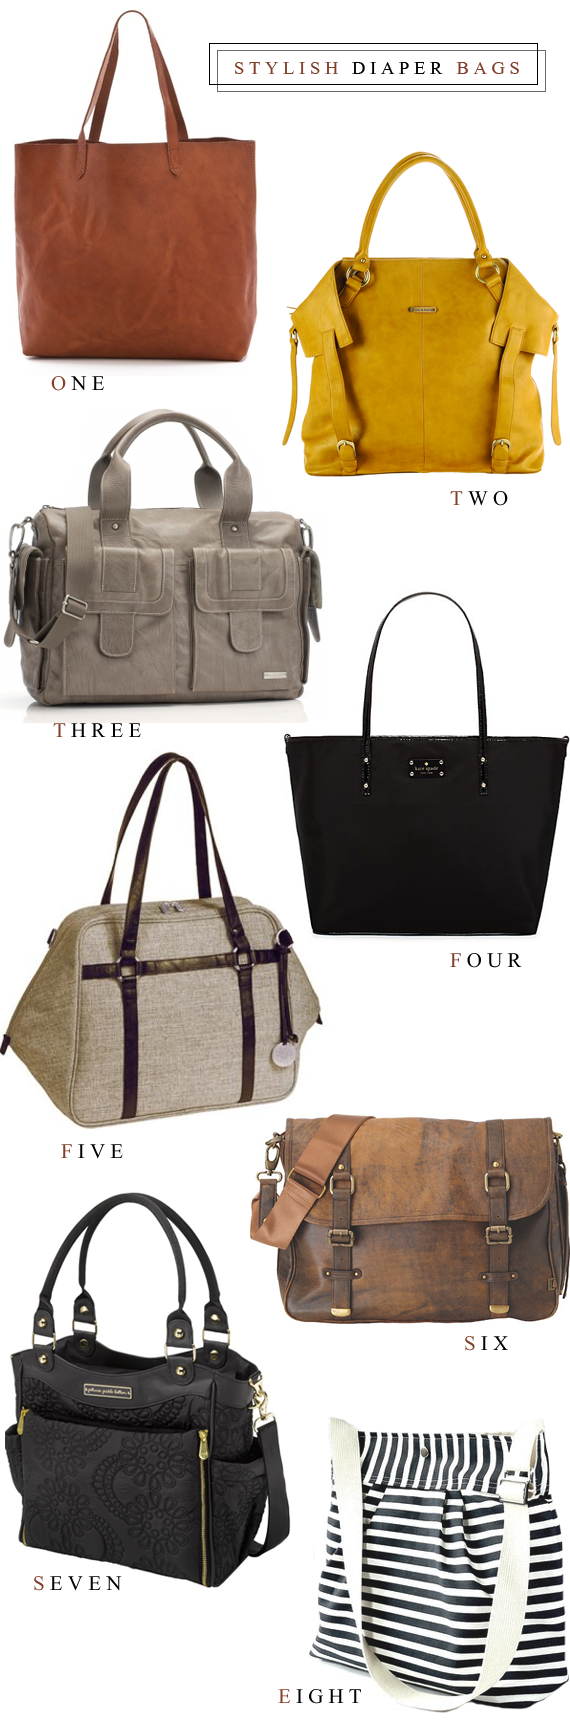 8 Stylish Diaper Bags // Bubby and Bean